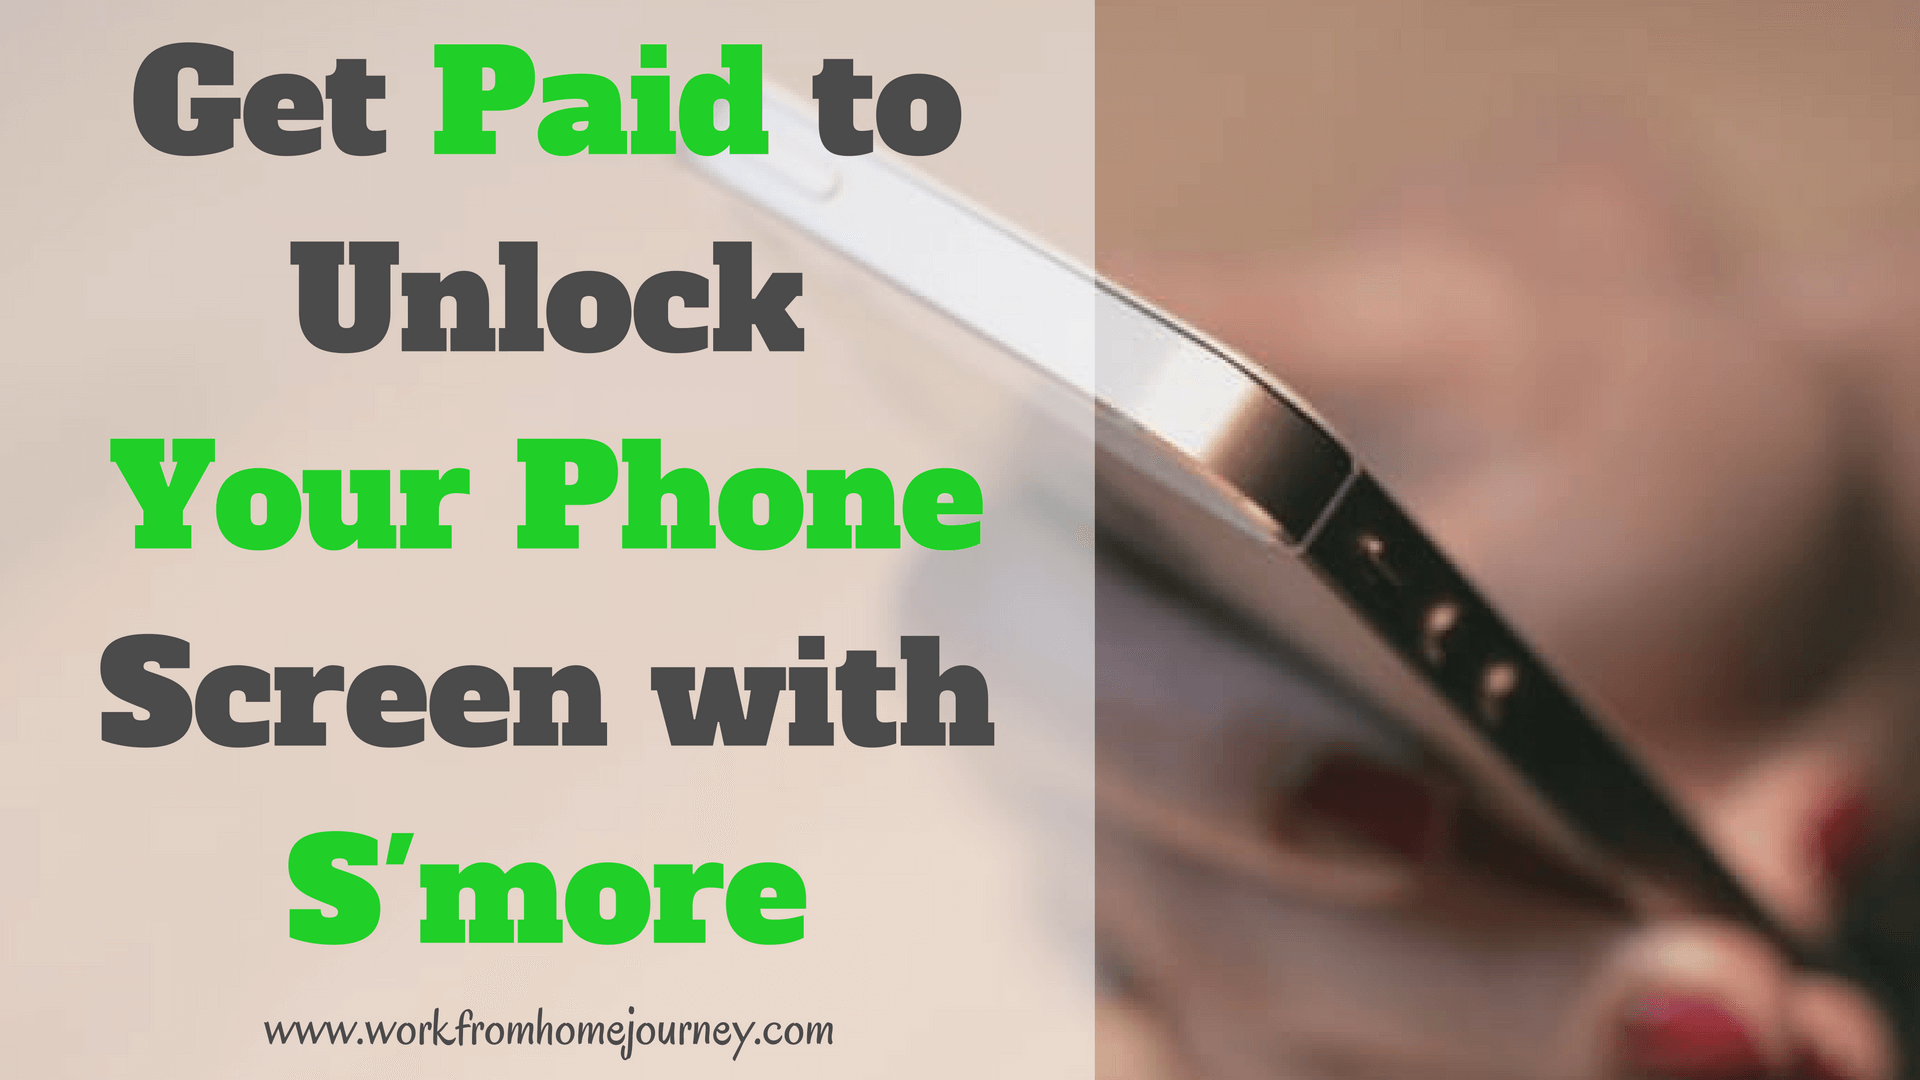 Get Paid to Unlock Your Phone Screen with the S'more app